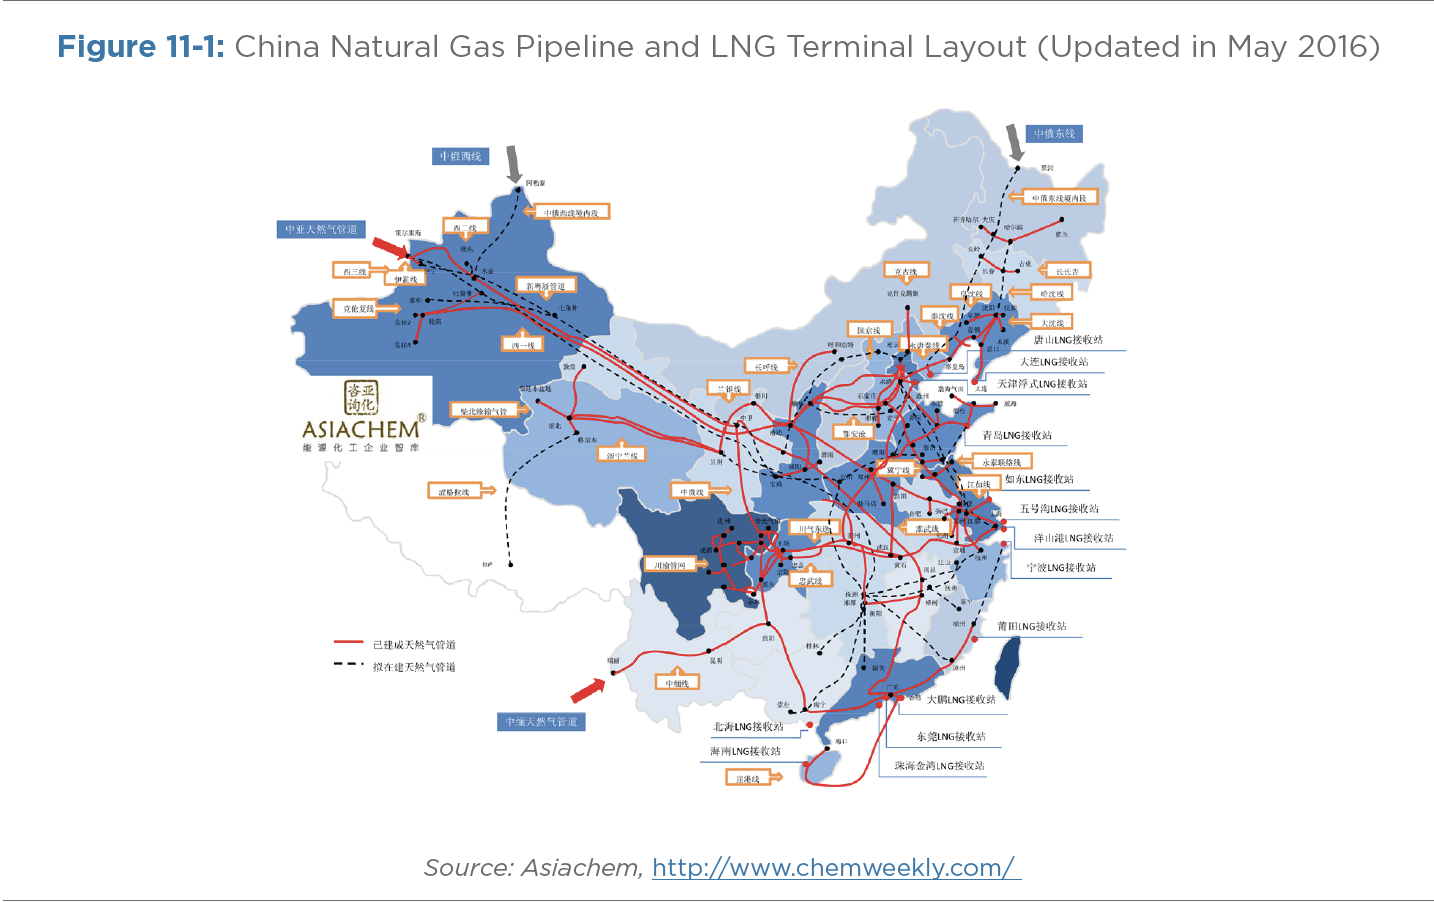 Figure 11-1: China Natural Gas Pipeline and LNG Terminal Layout (Updated in May 2016)